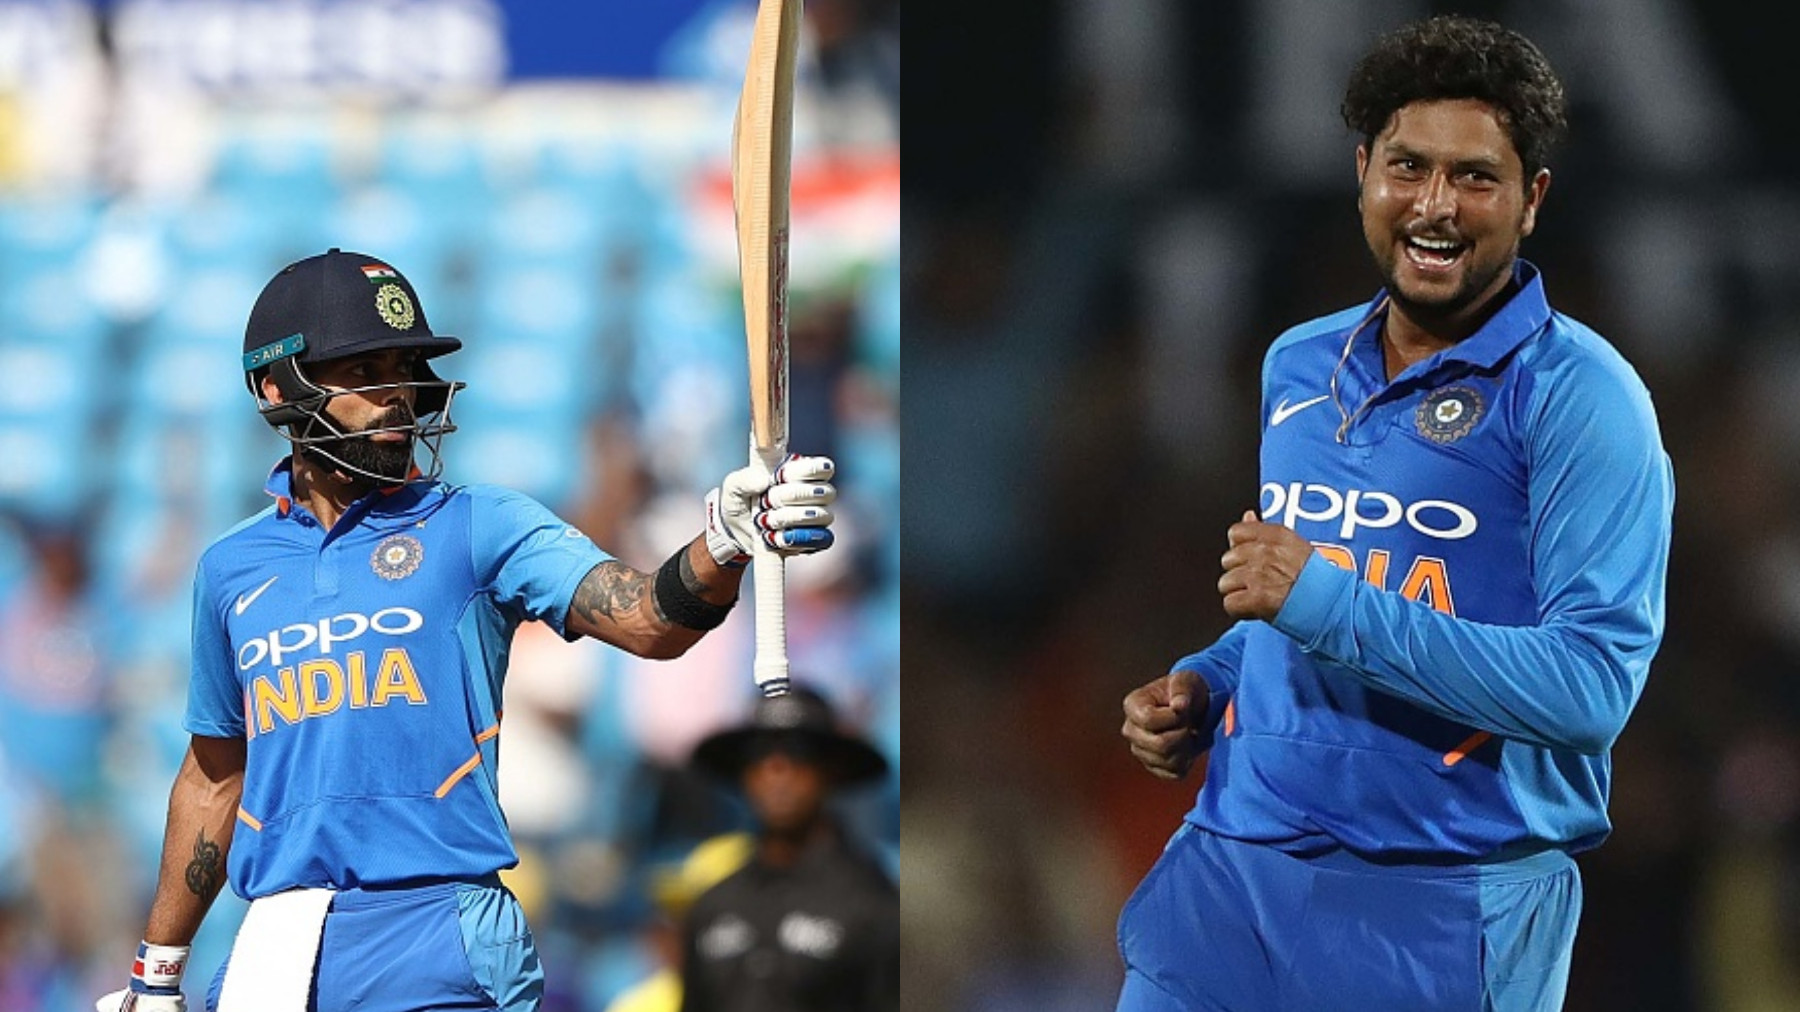 IND v AUS 2019: 2nd ODI- India prevails over Australia despite Stoinis; Kohli, Kuldeep and Shankar shine